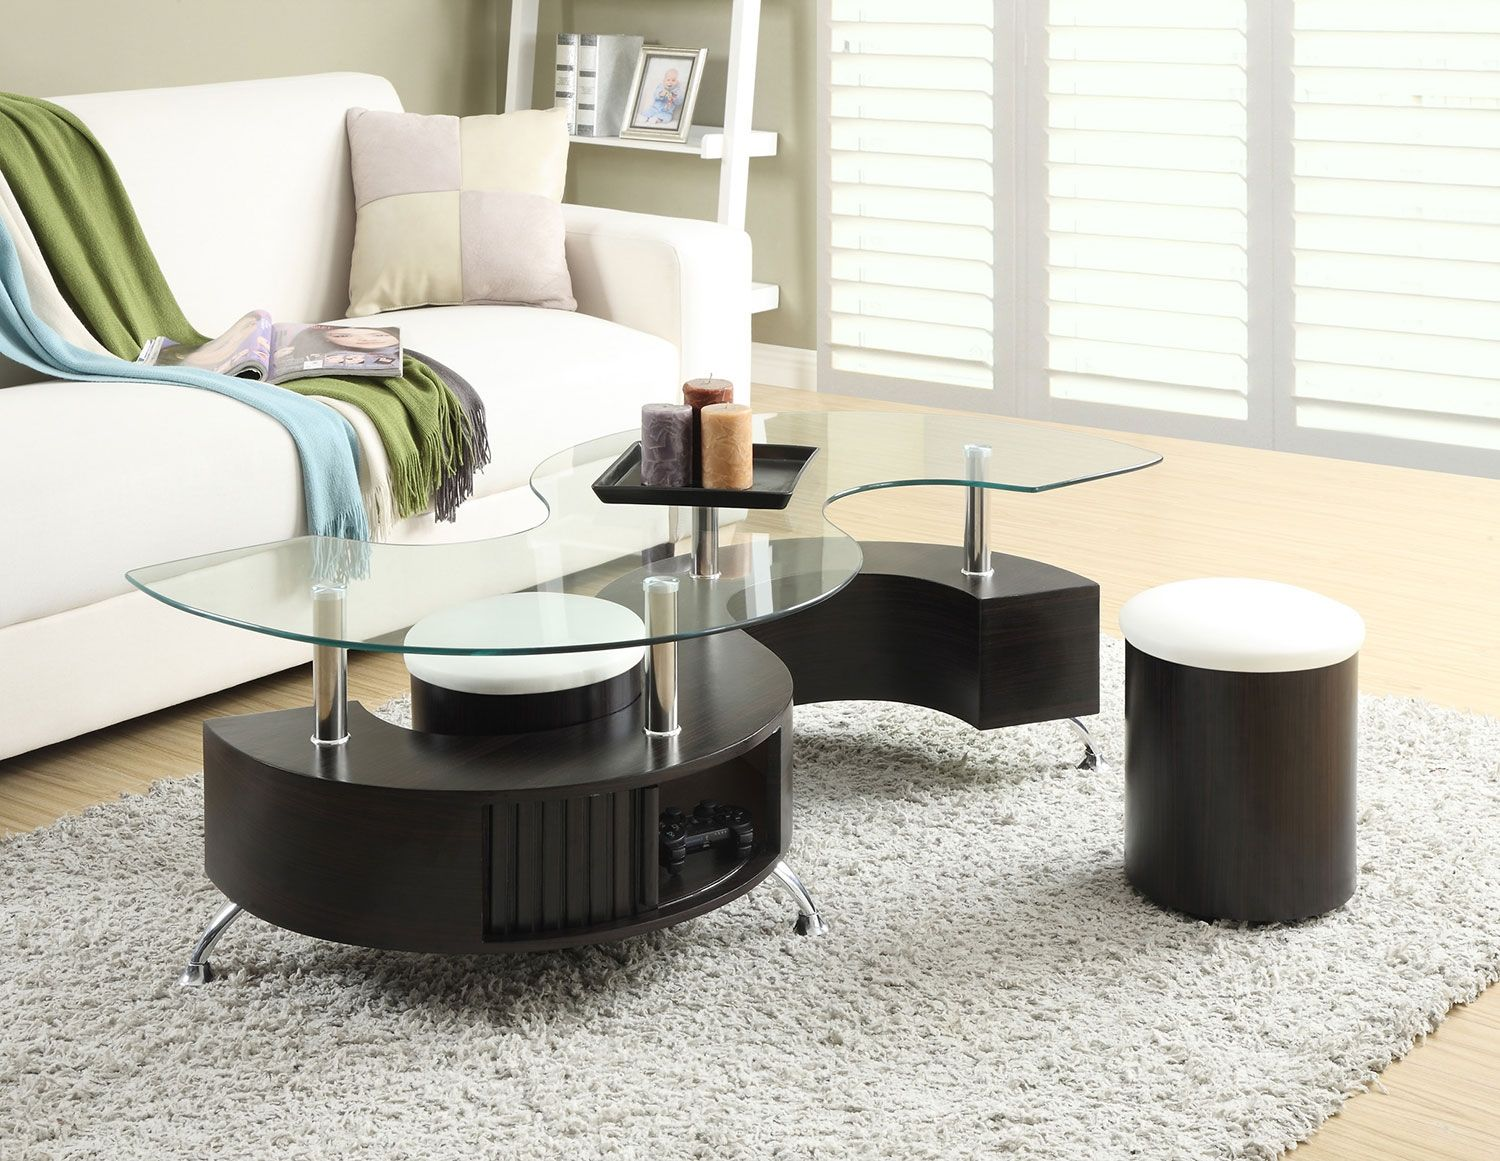 seradala coffee table with two ottomans | ottomans, footrest and